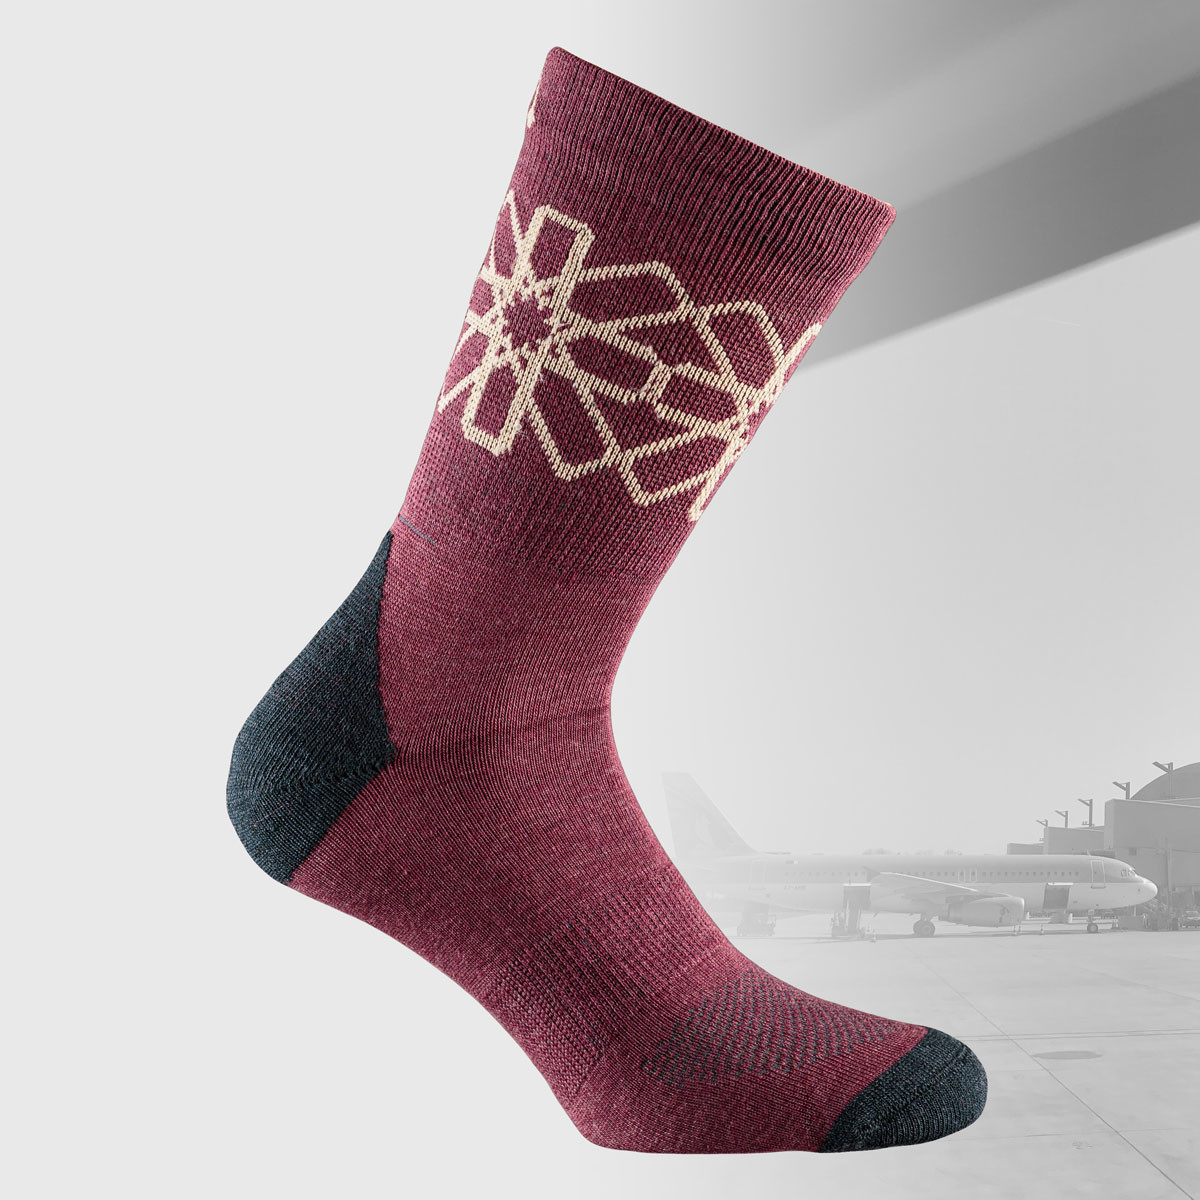 travel socks in burgundy red with middle east pattern